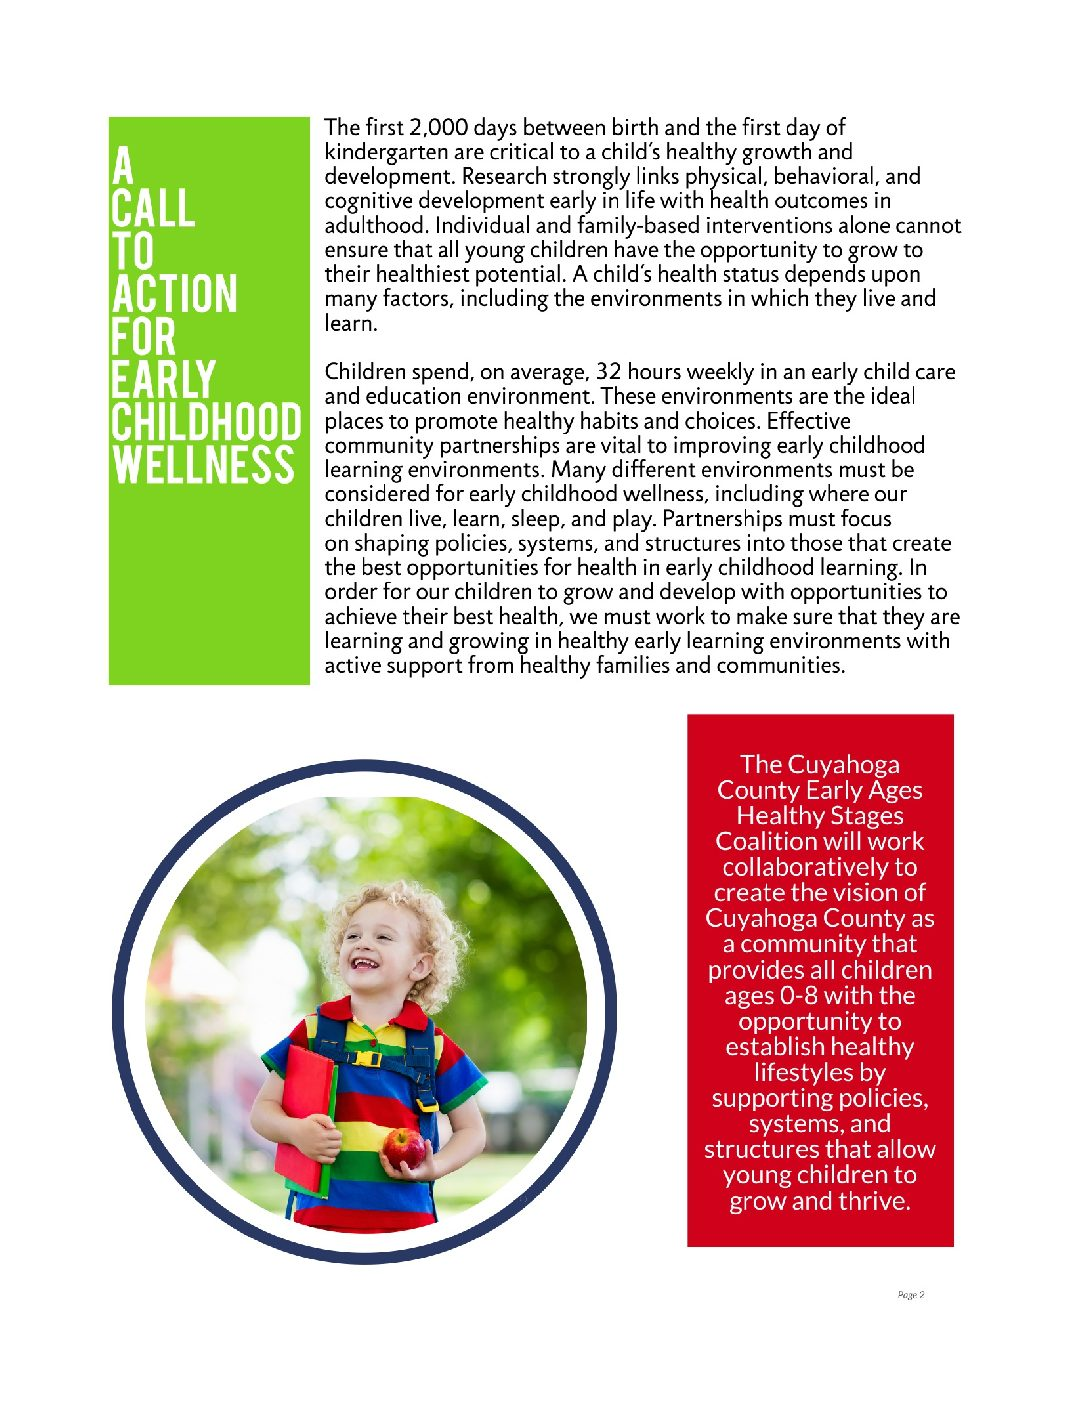 Early Childhood Call To Action